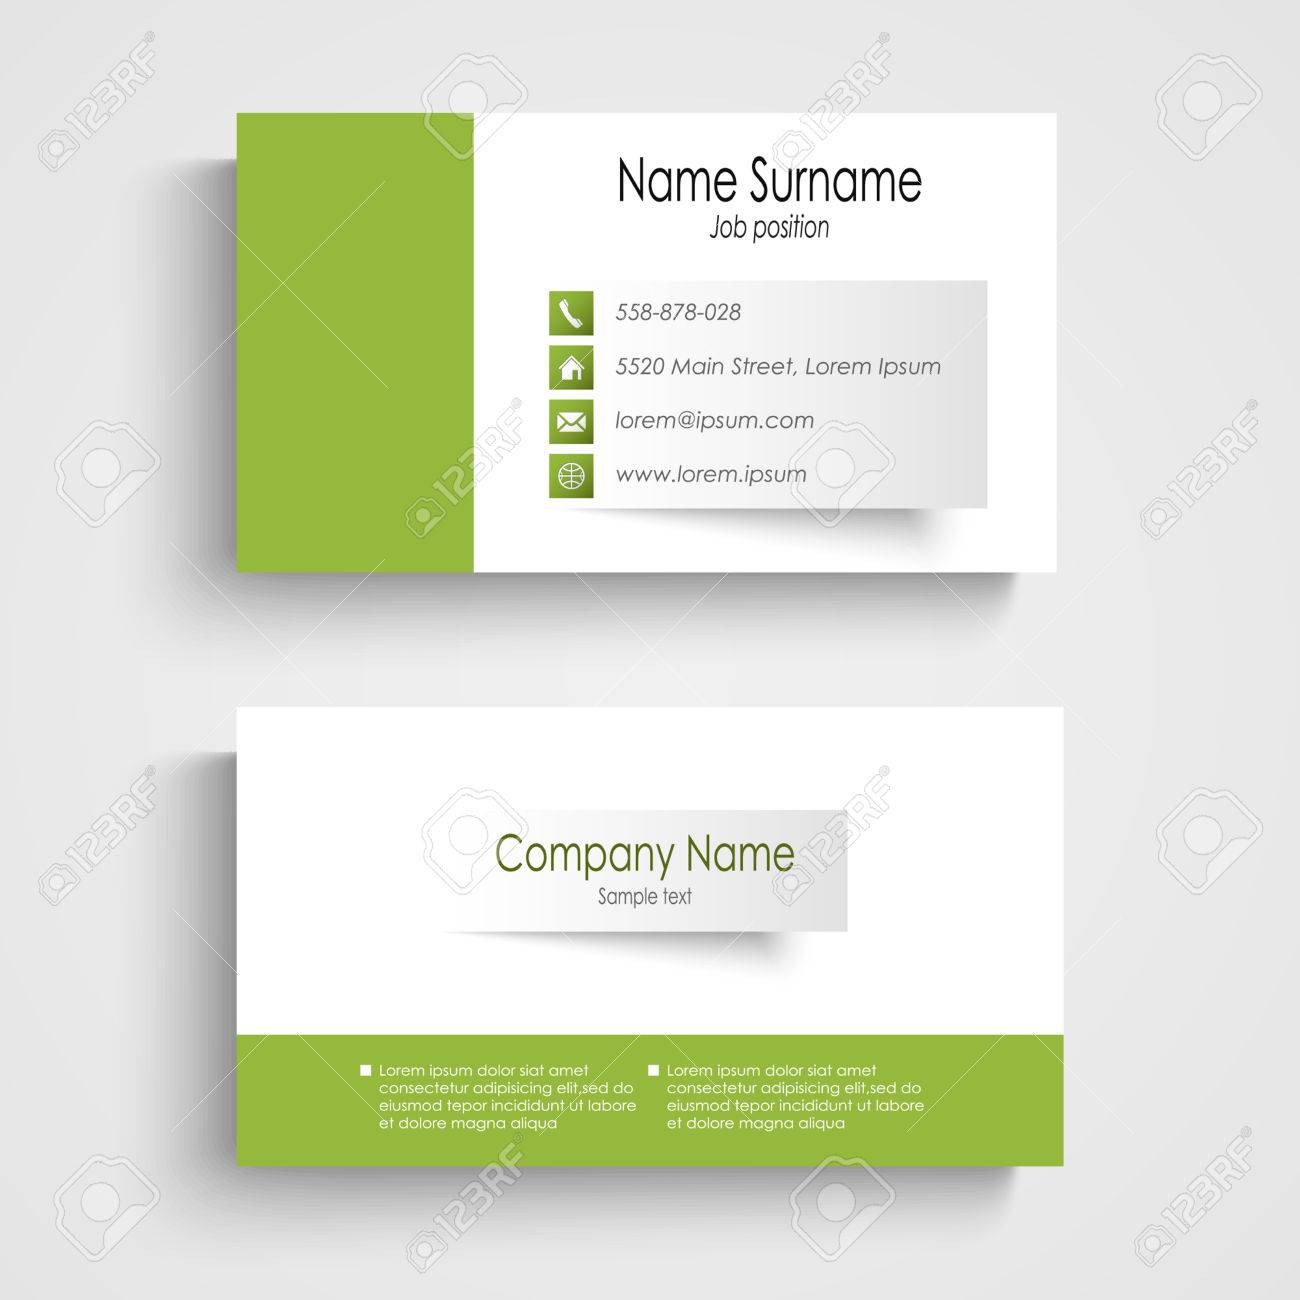 Green Business Cards Images - Free Business Cards